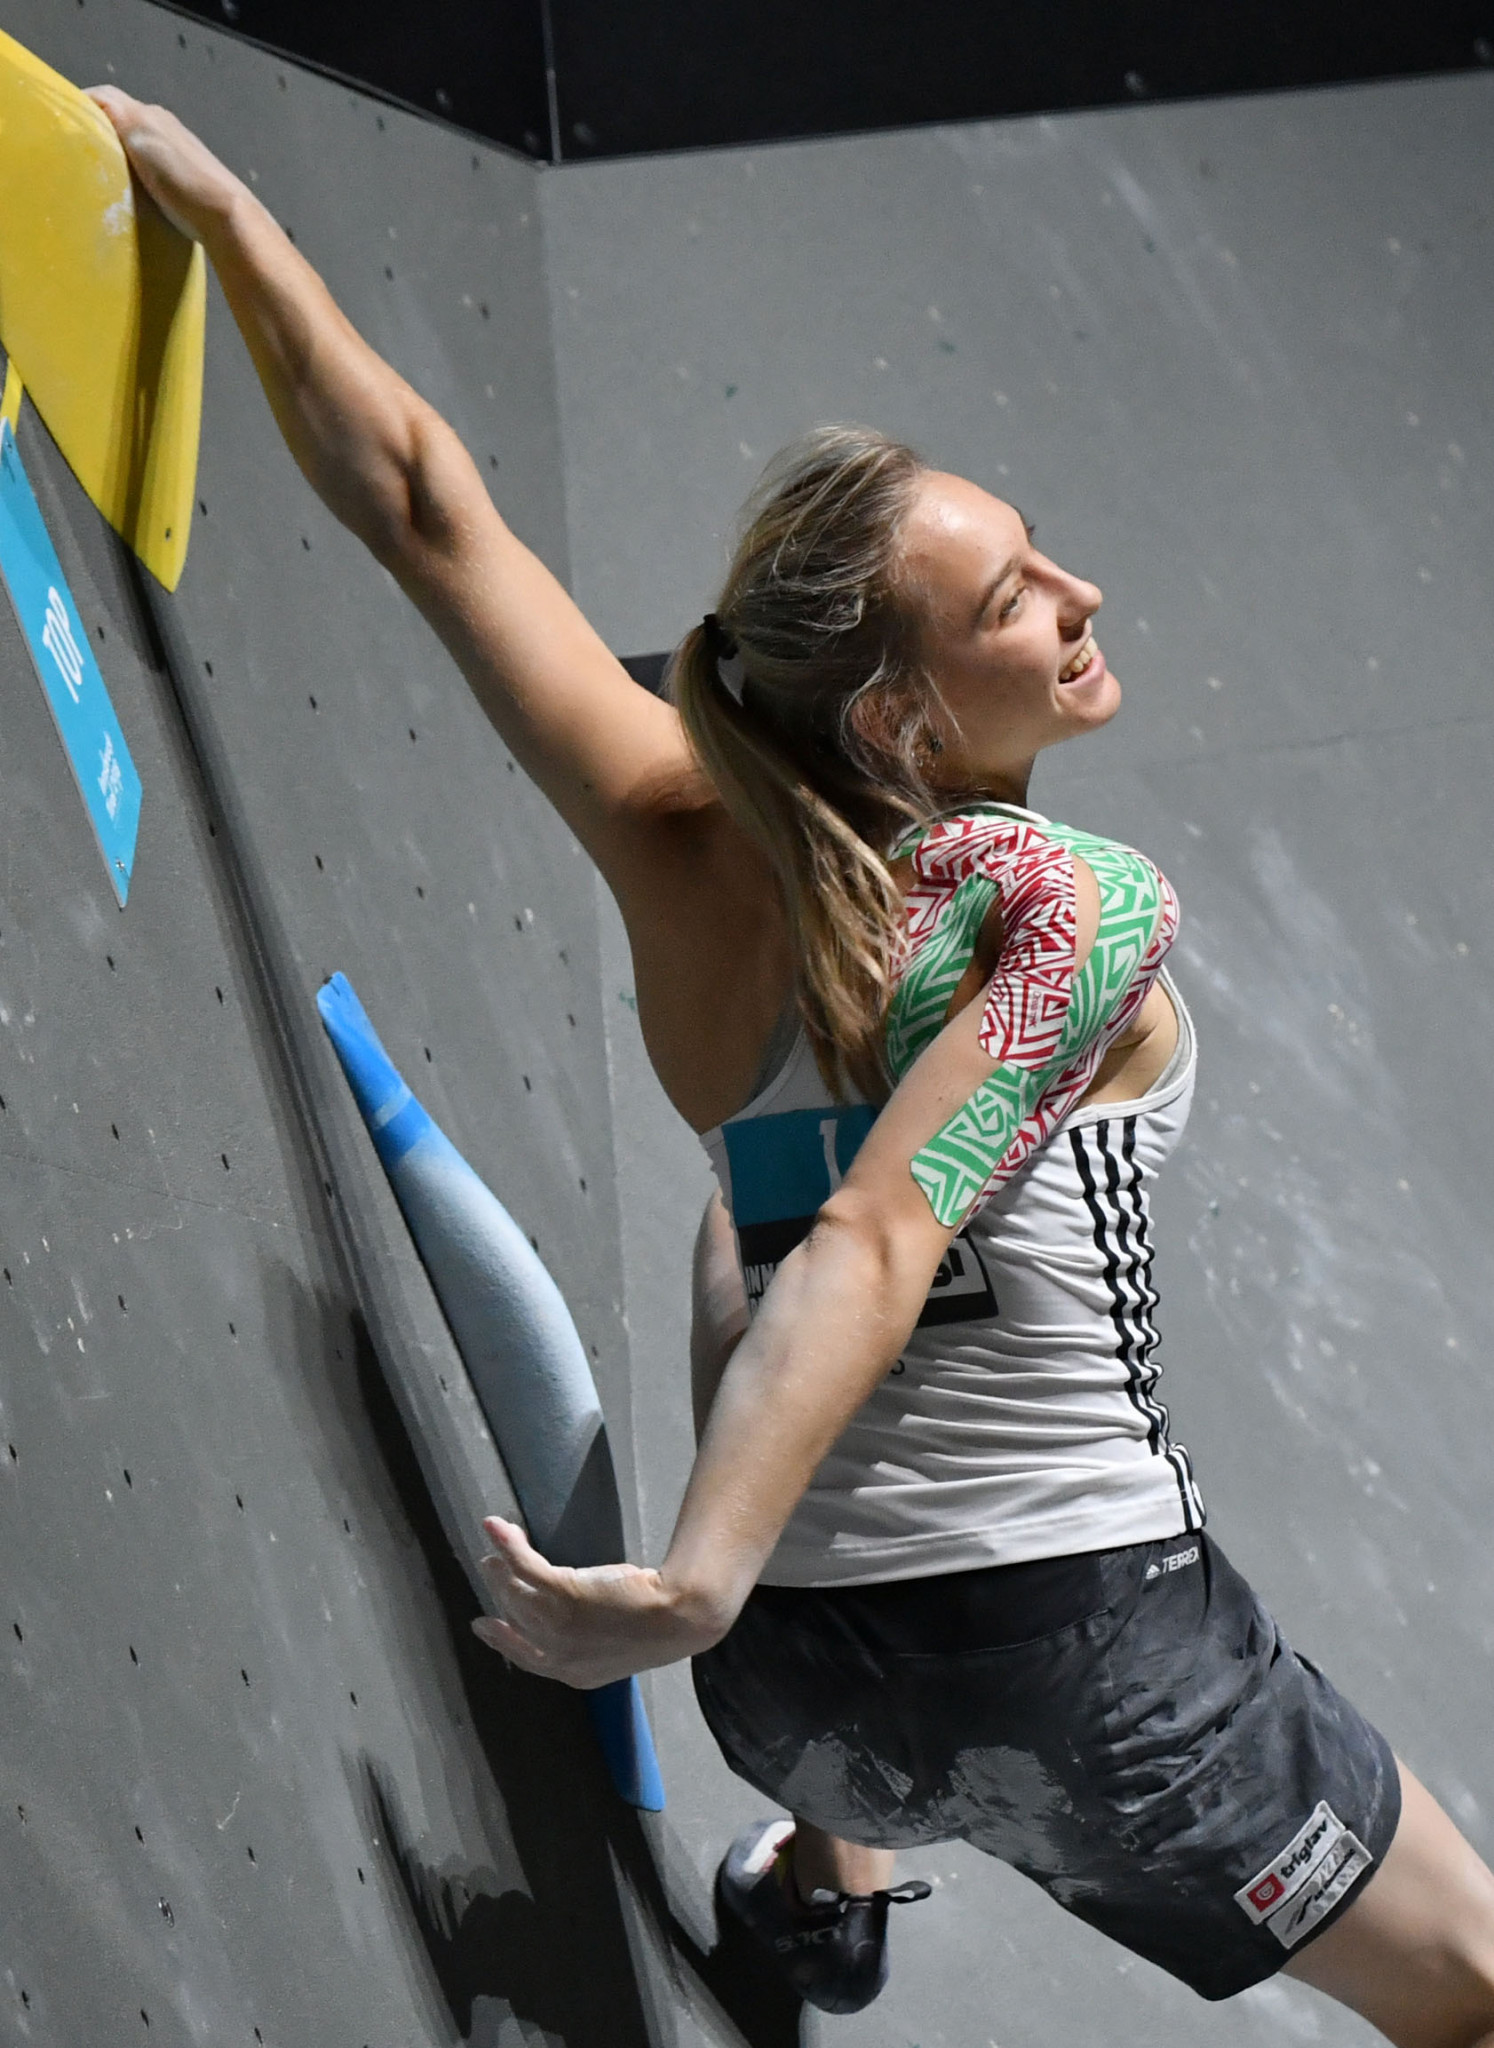 Slovenia's multiple world champion Janja Garnbret will continue the defence of her Lead World Cup climbing title on the home ground of Kranj in Slovenia tomorrow ©Getty Images